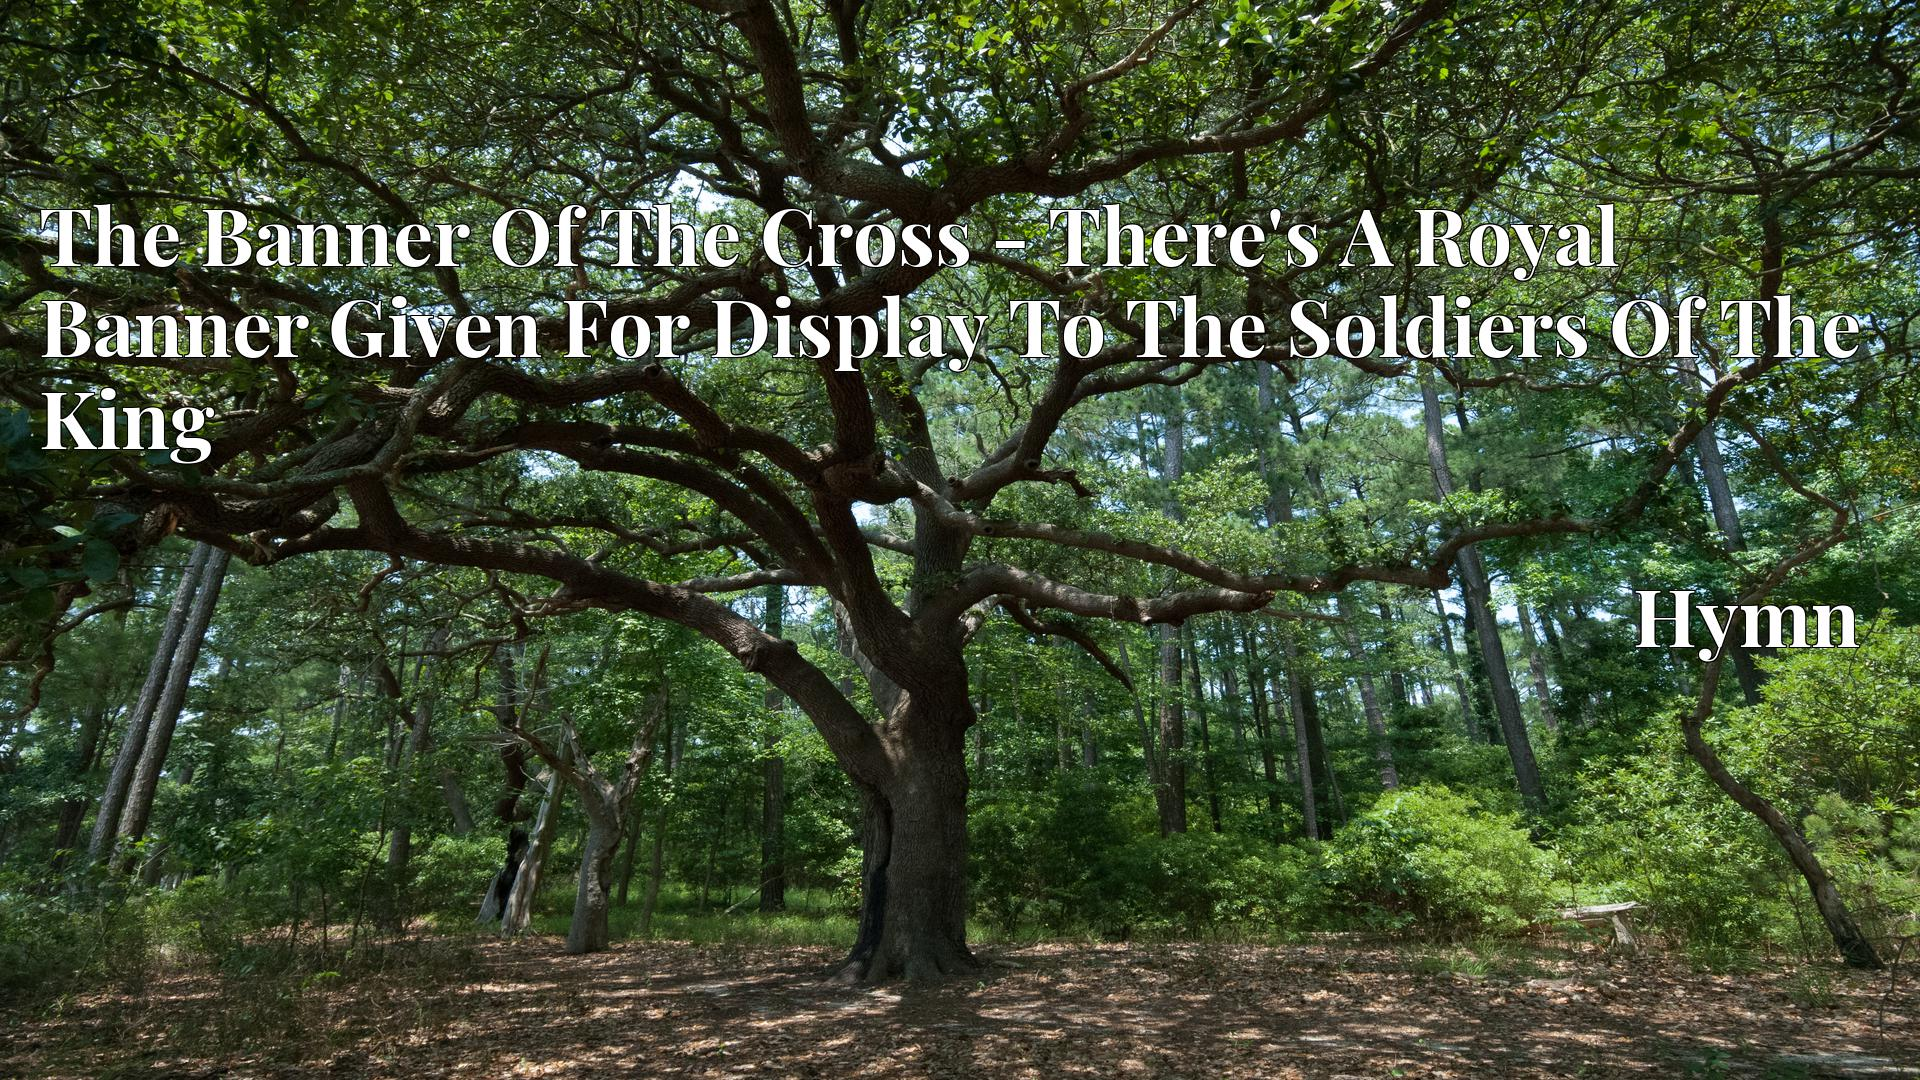 The Banner Of The Cross - There's A Royal Banner Given For Display To The Soldiers Of The King Hymn